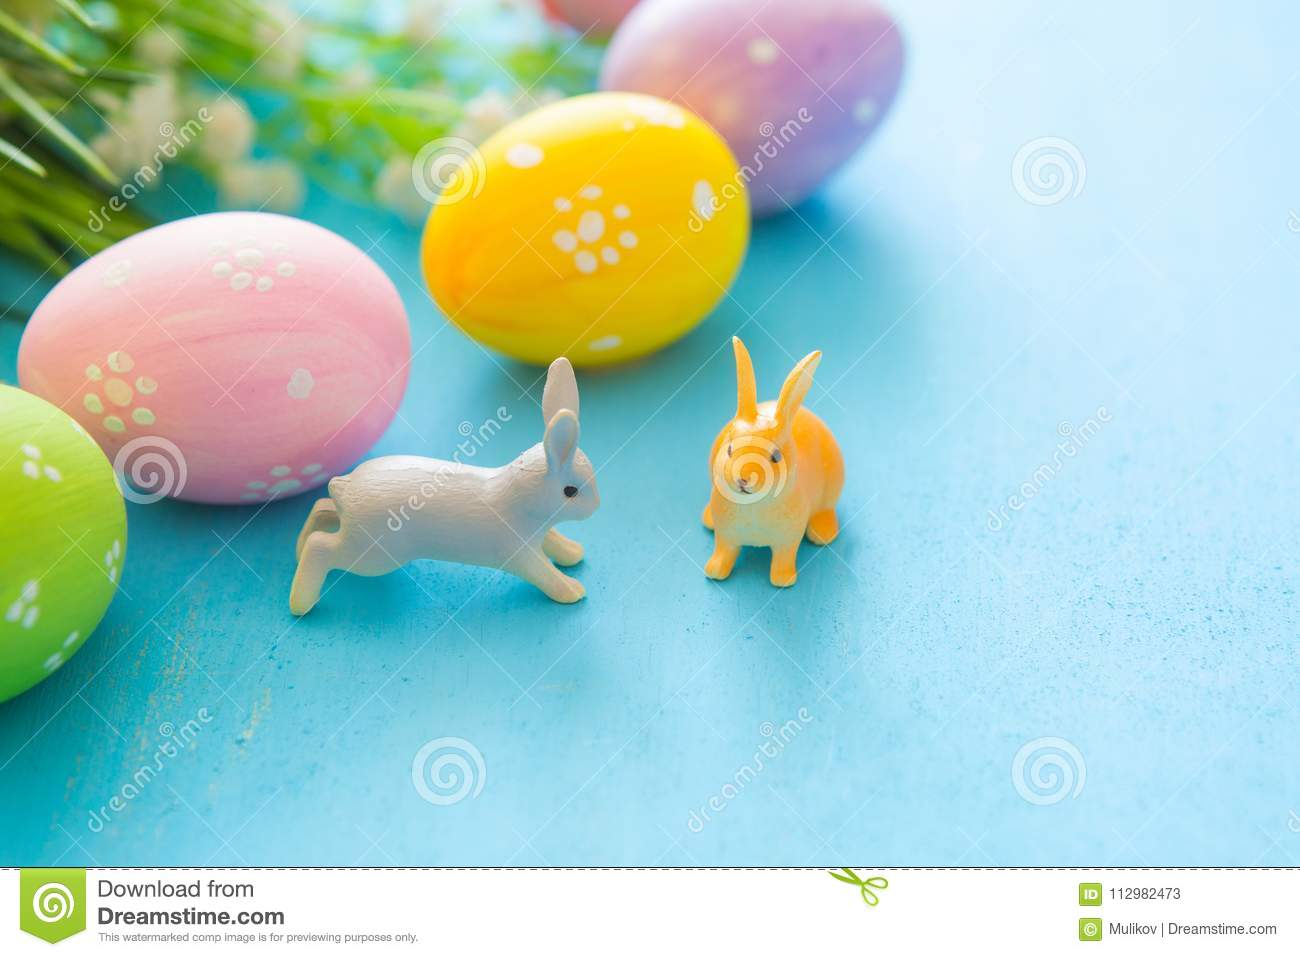 Beautiful Easter eggs with rabbits toy and flowers on blue wooden background, closeup. Easter holiday concept